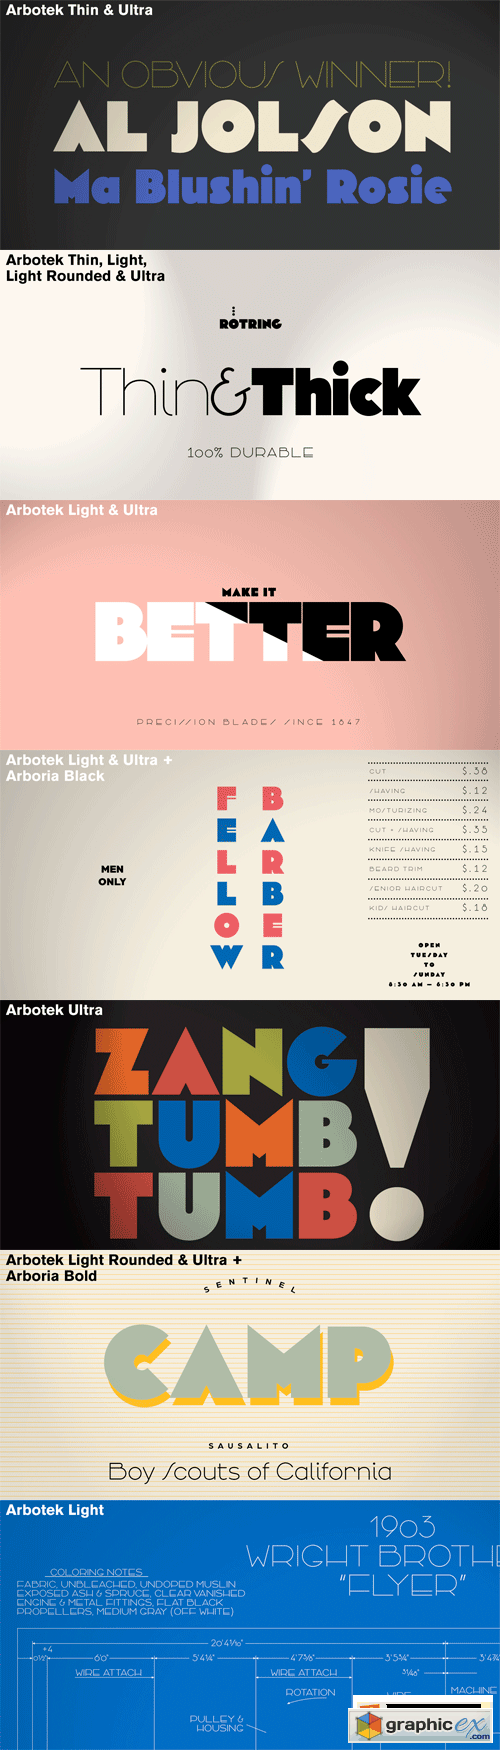 Arbotek Font Family - 4 Fonts for $208